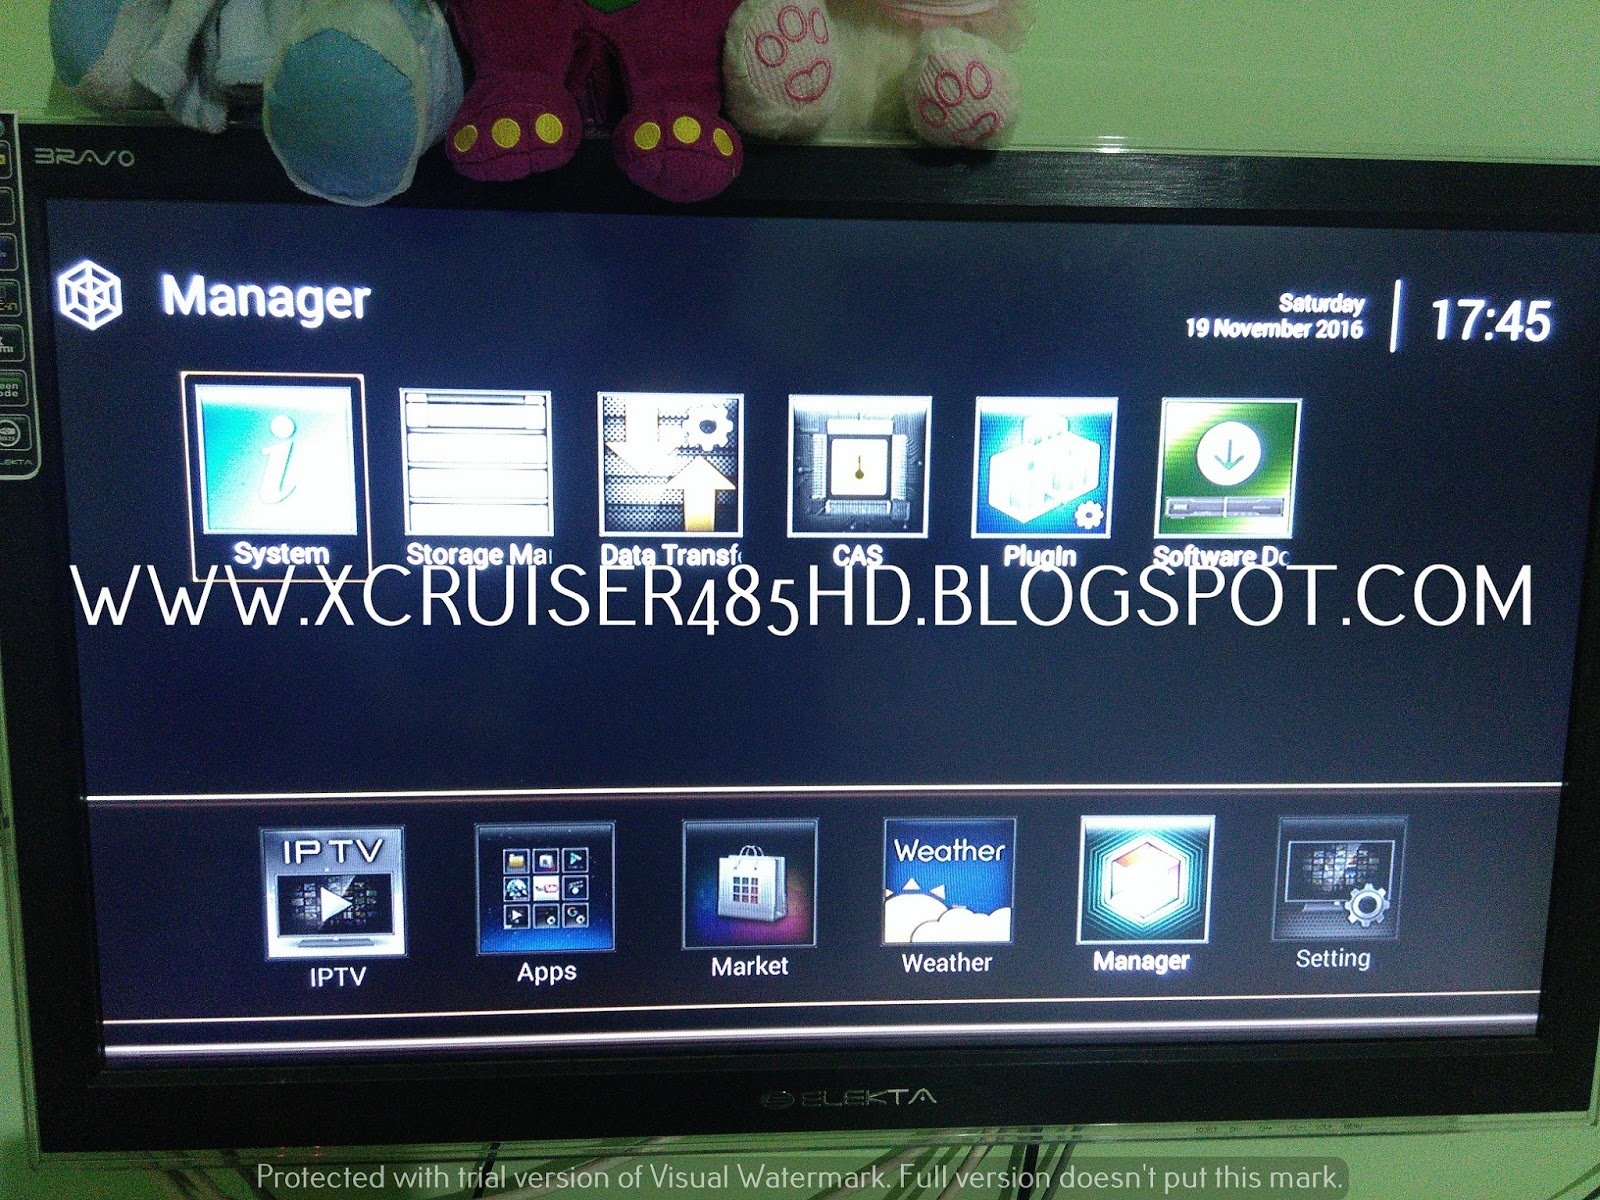 XCRUSIER XDSR485HD ANDROID: HOW TO CONFIGURE CCCAM SERVER IN